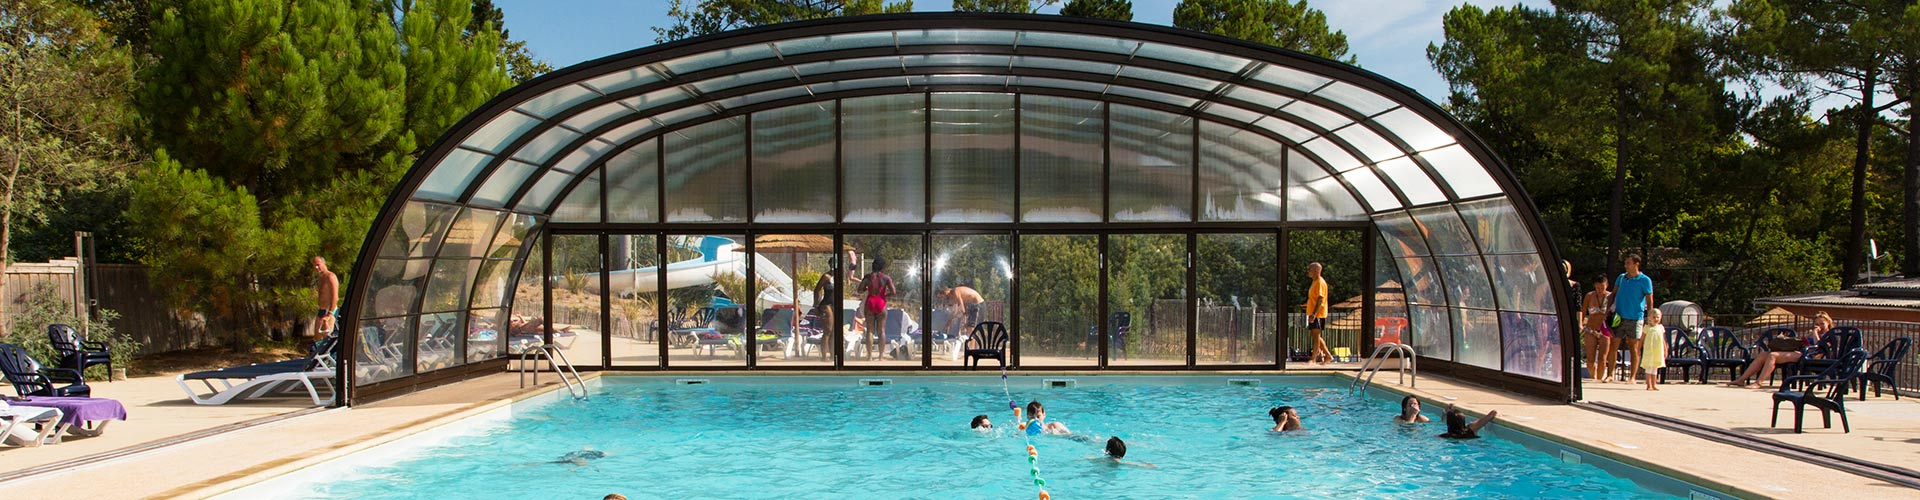 Camping le palace soulac sur mer camping 4 toiles en for Camping gironde piscine